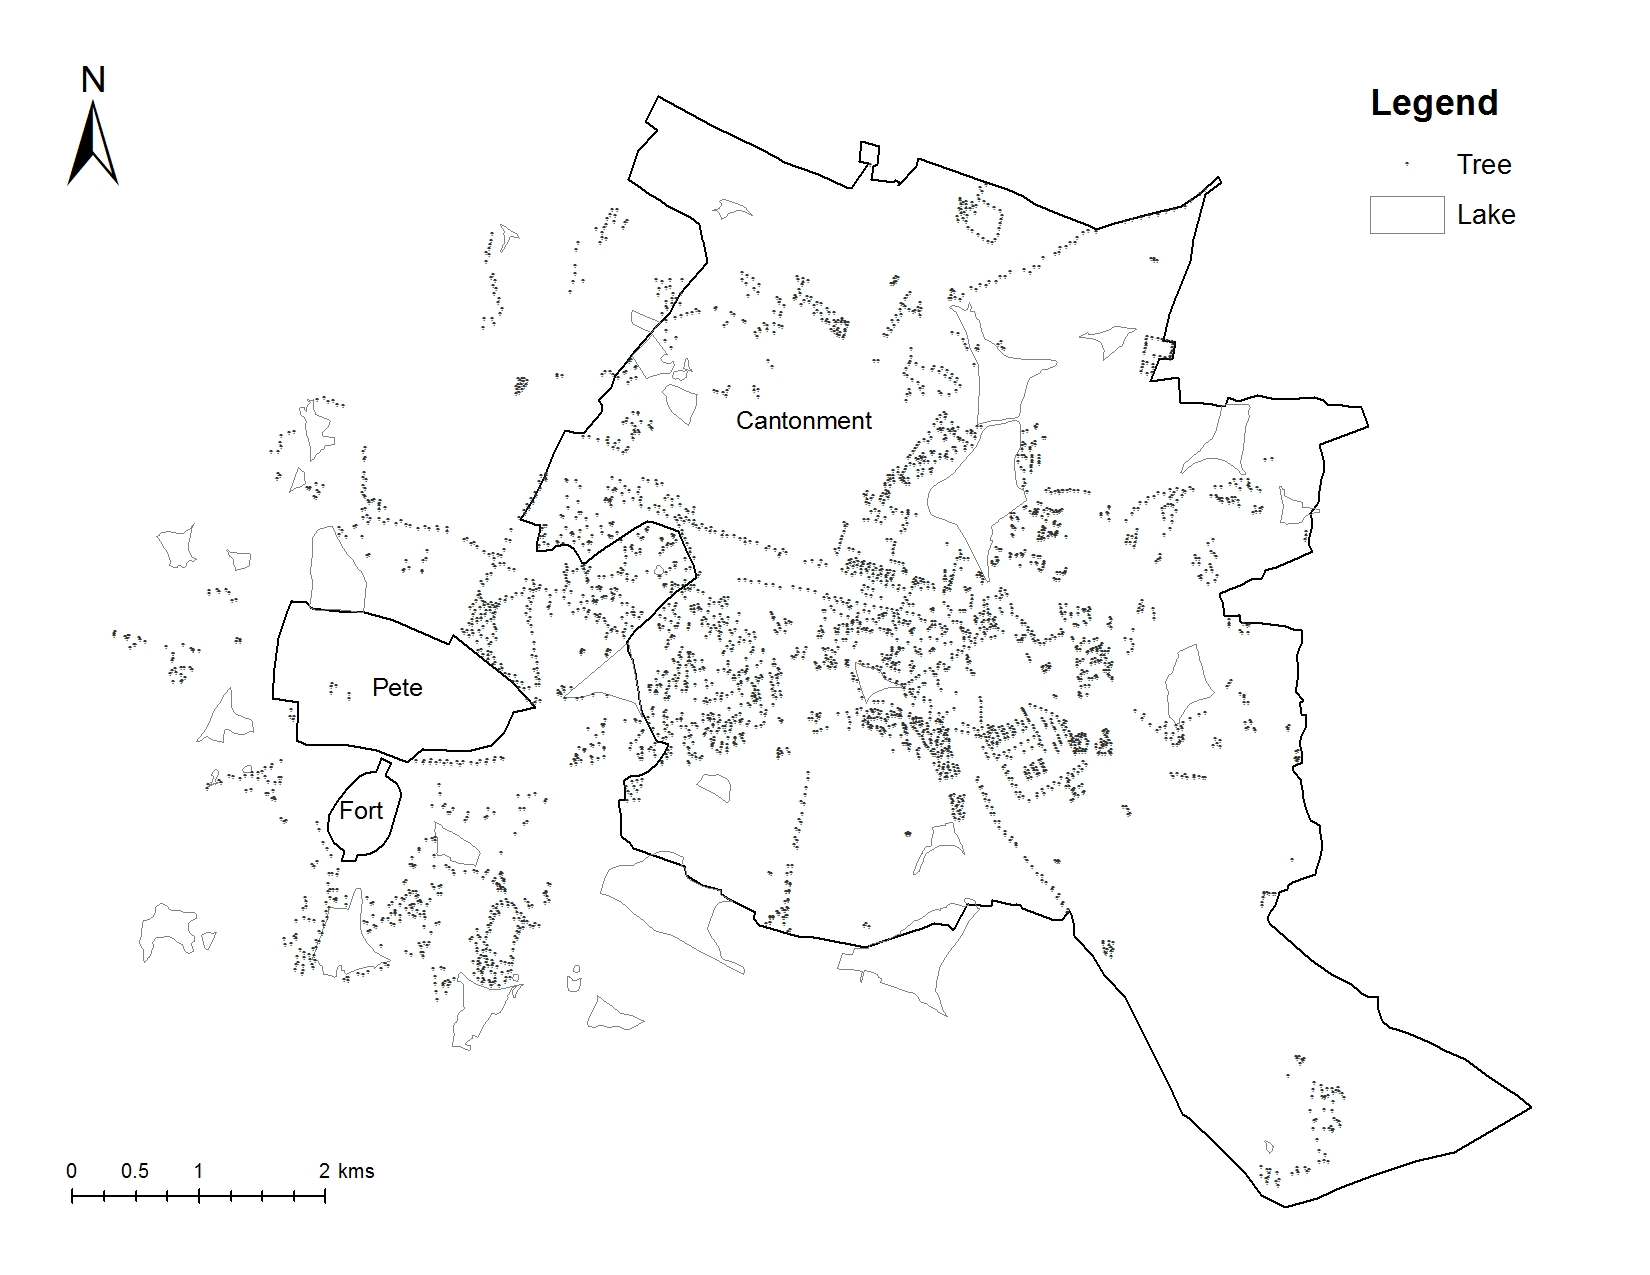 Distribution of trees and lakes in Bengaluru in 1885